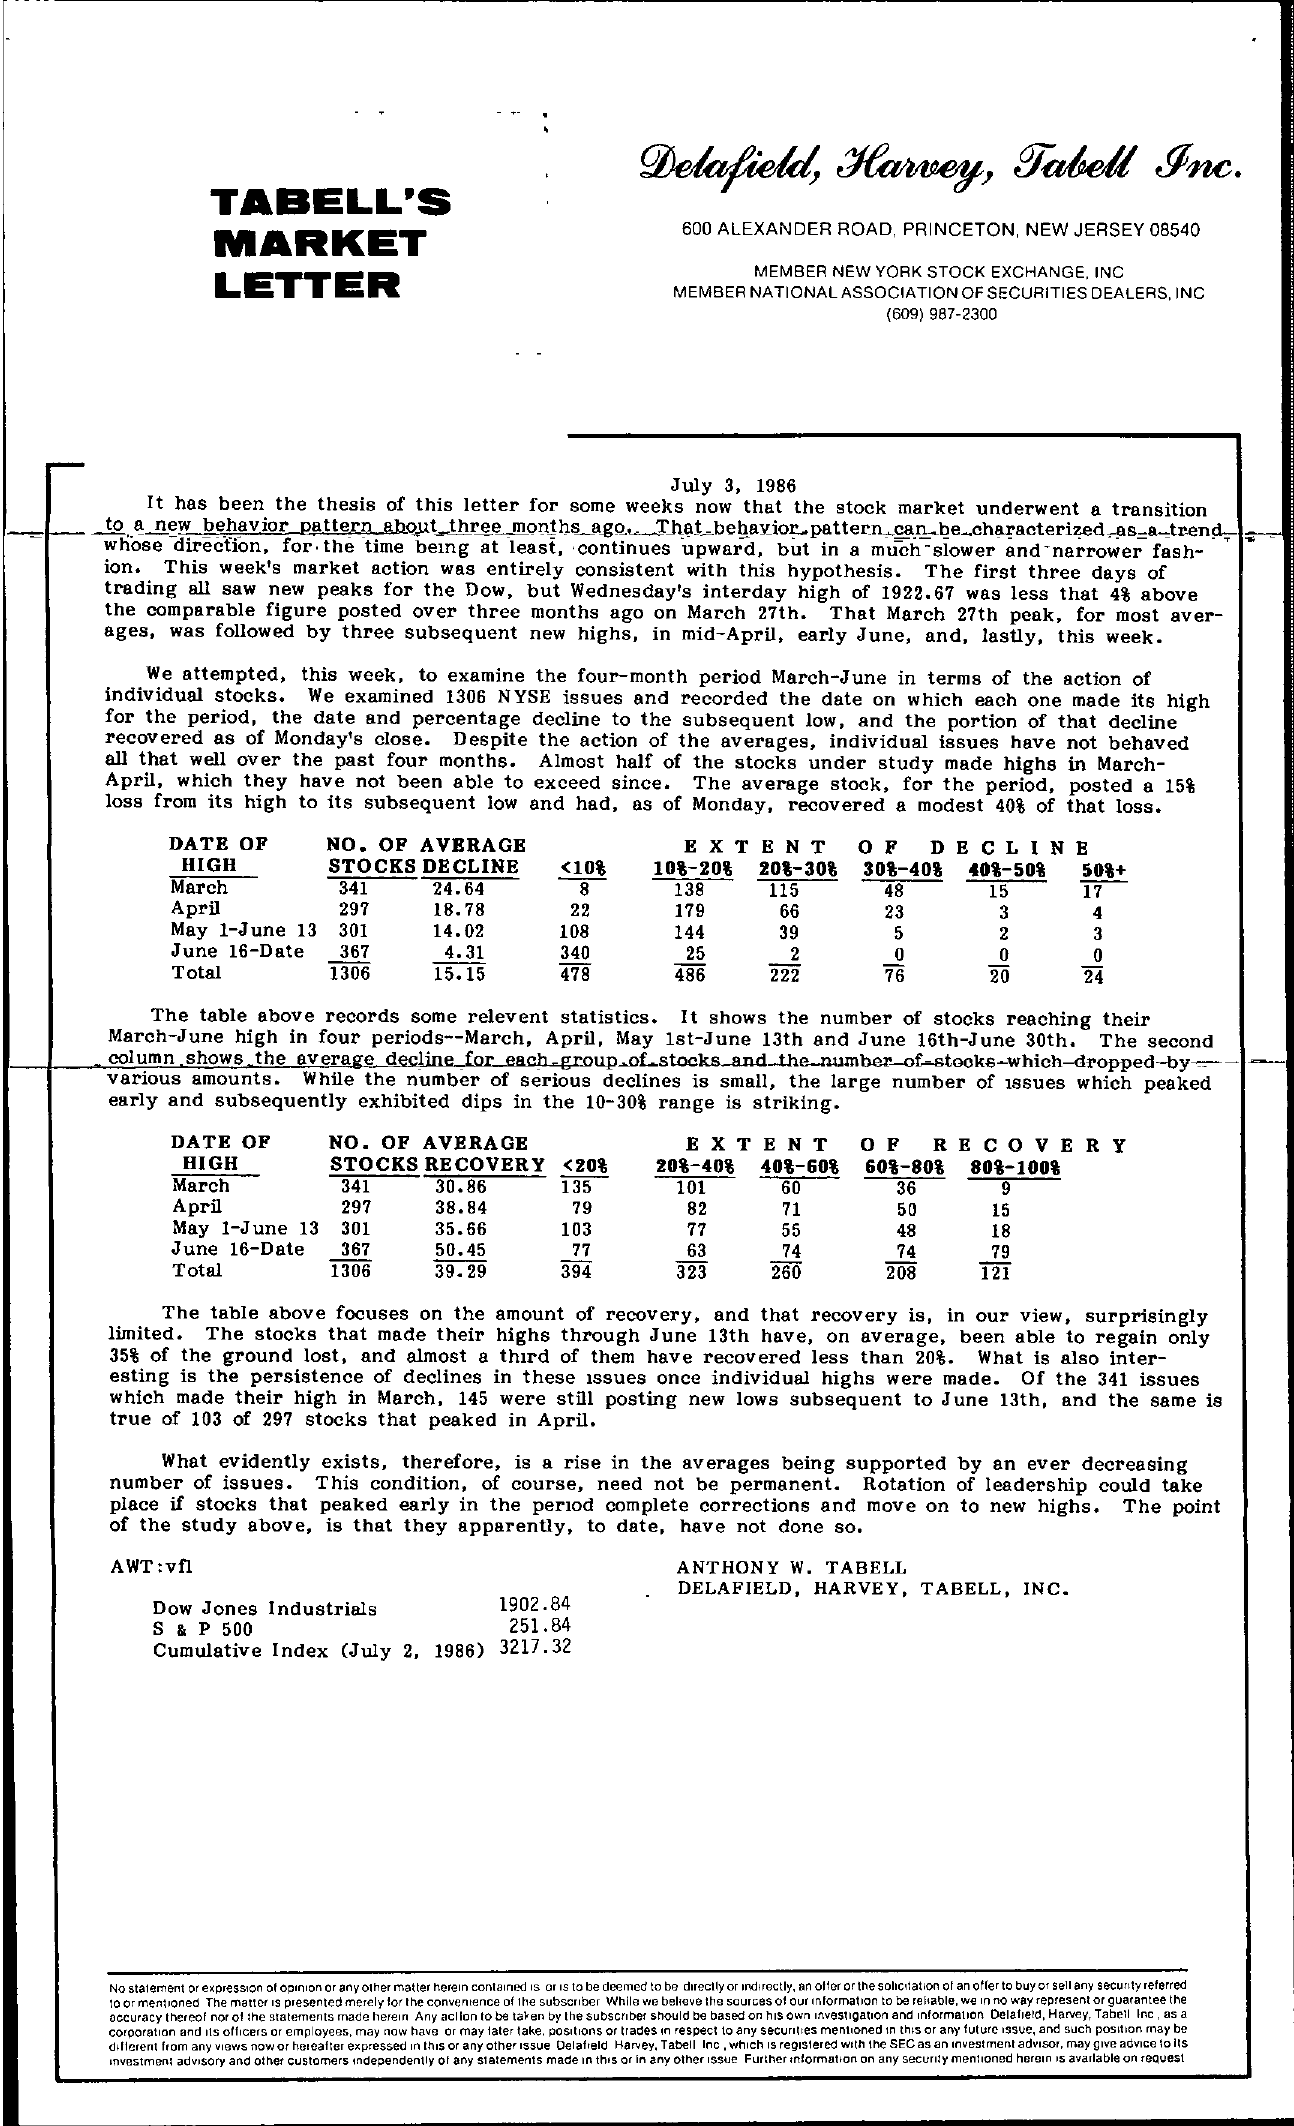 Tabell's Market Letter - July 03, 1986